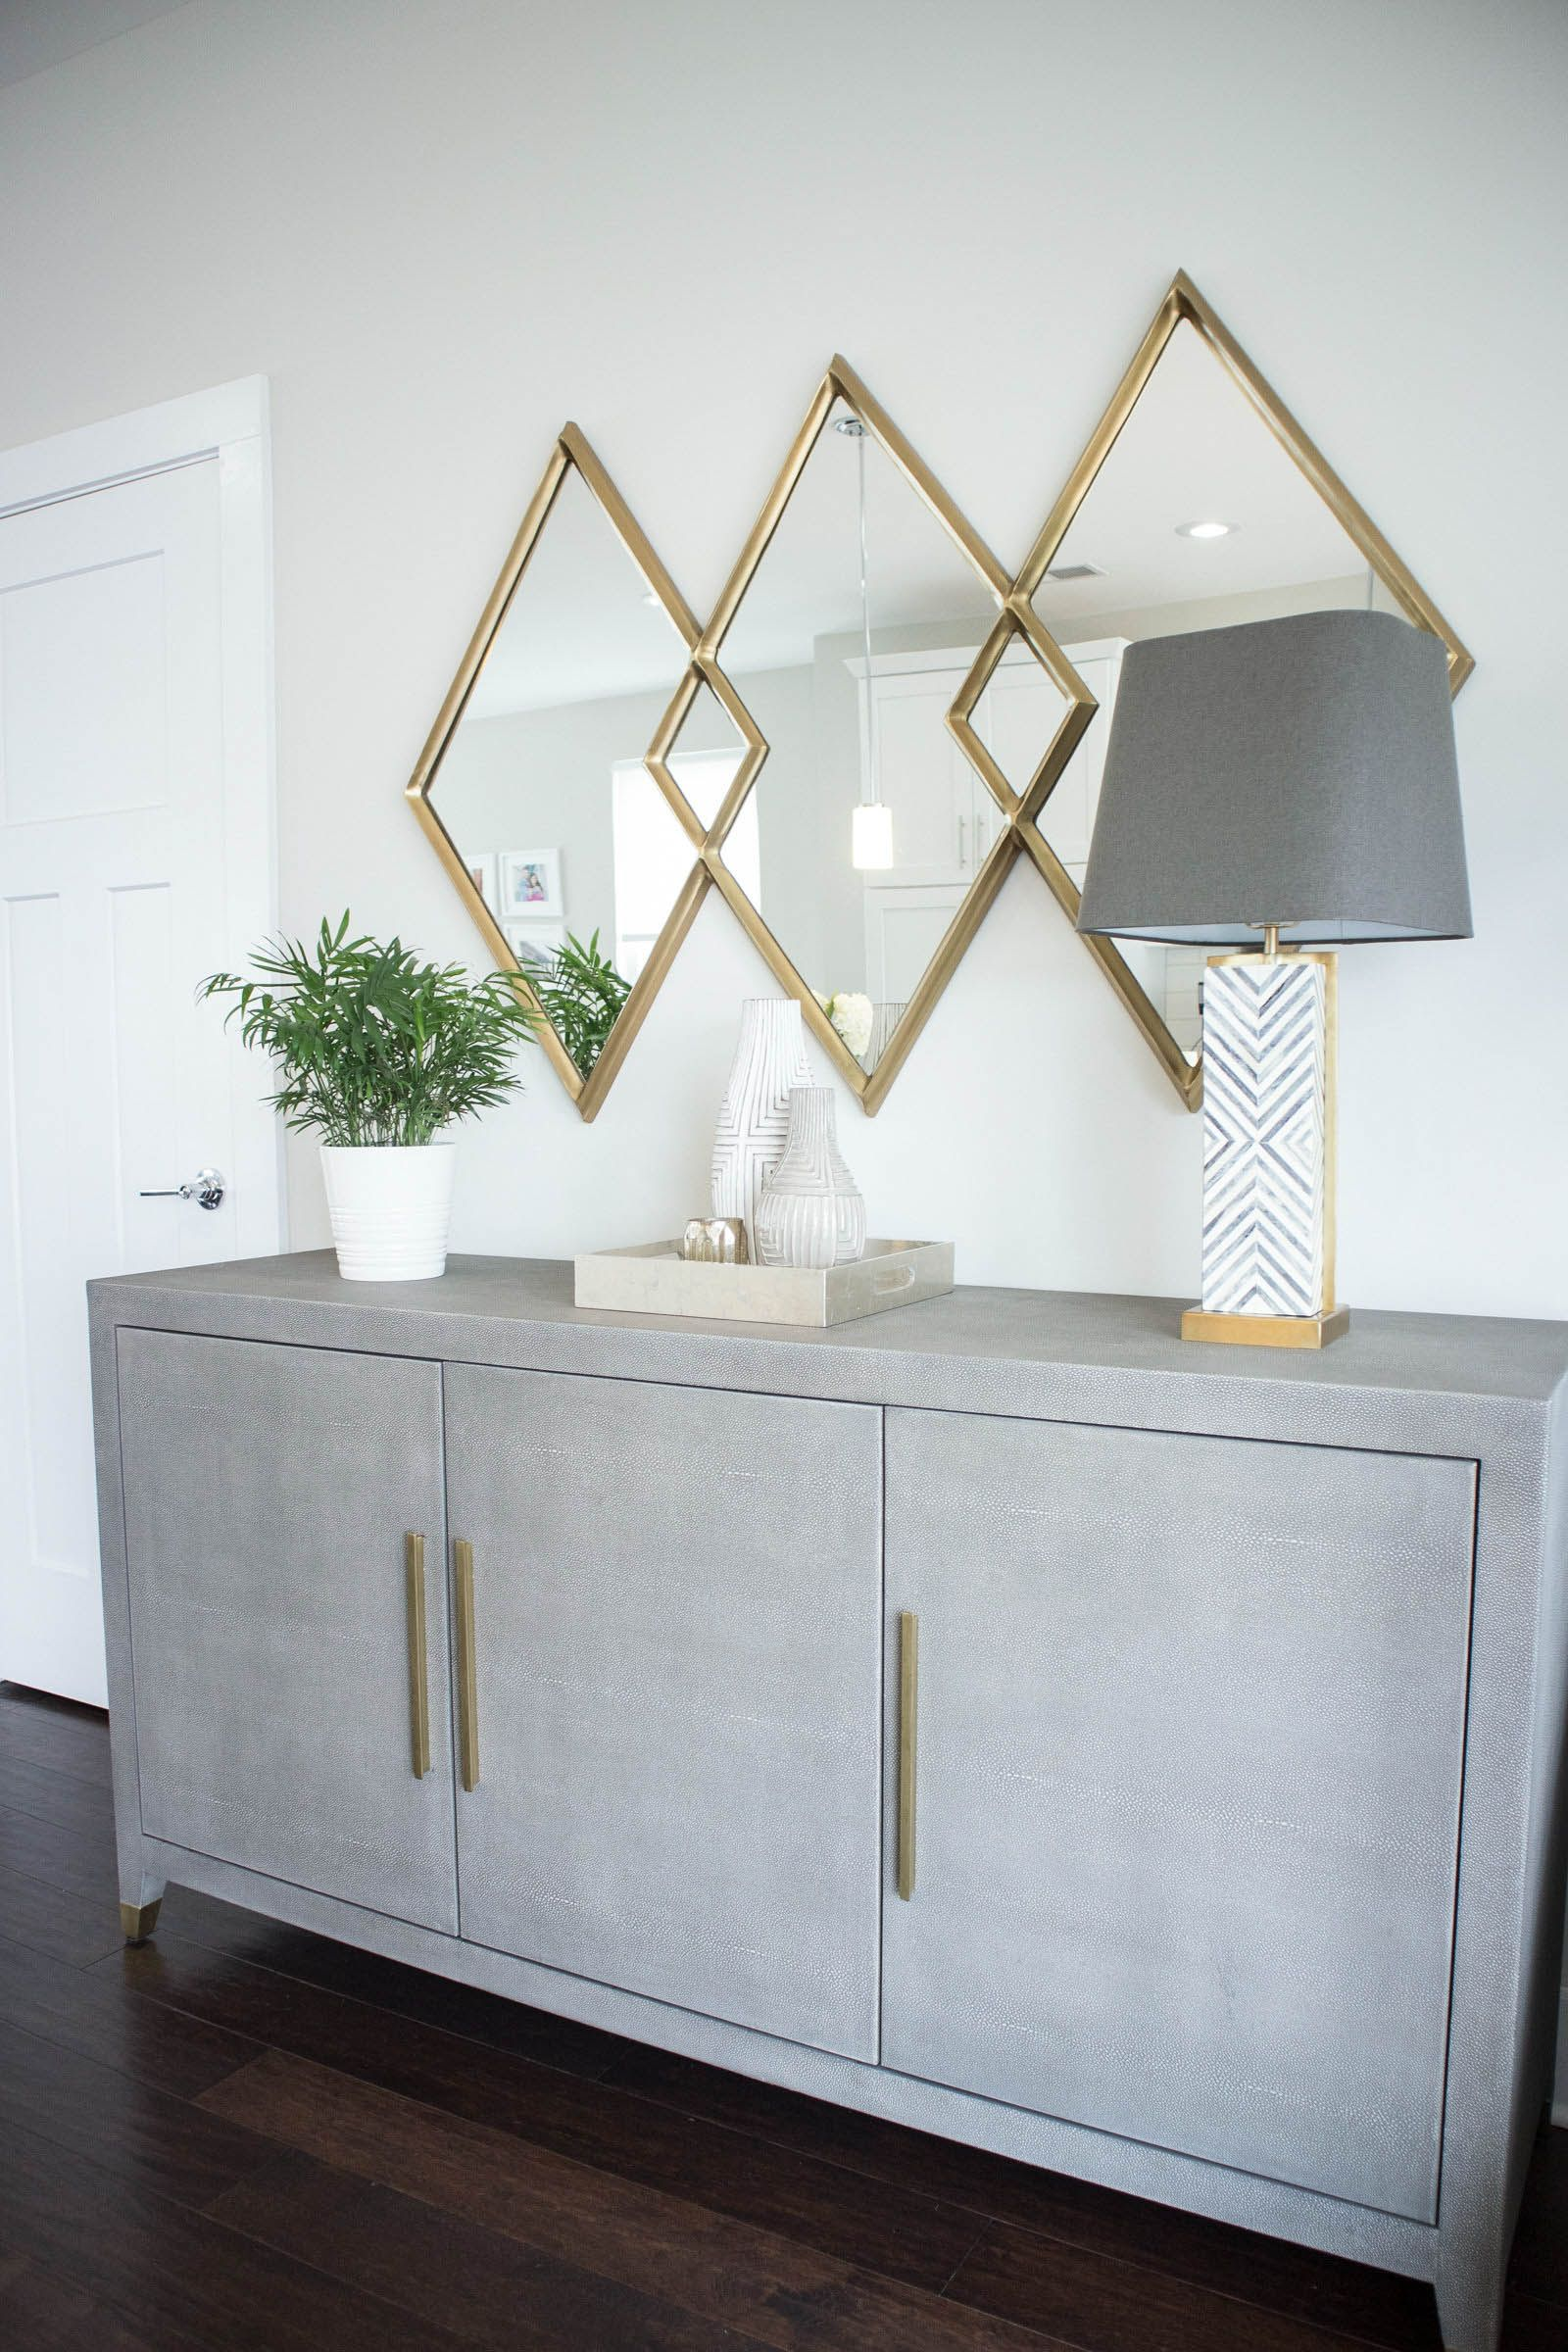 restoration hardware shagreen sideboard, modern kitchen | Home Decor ...